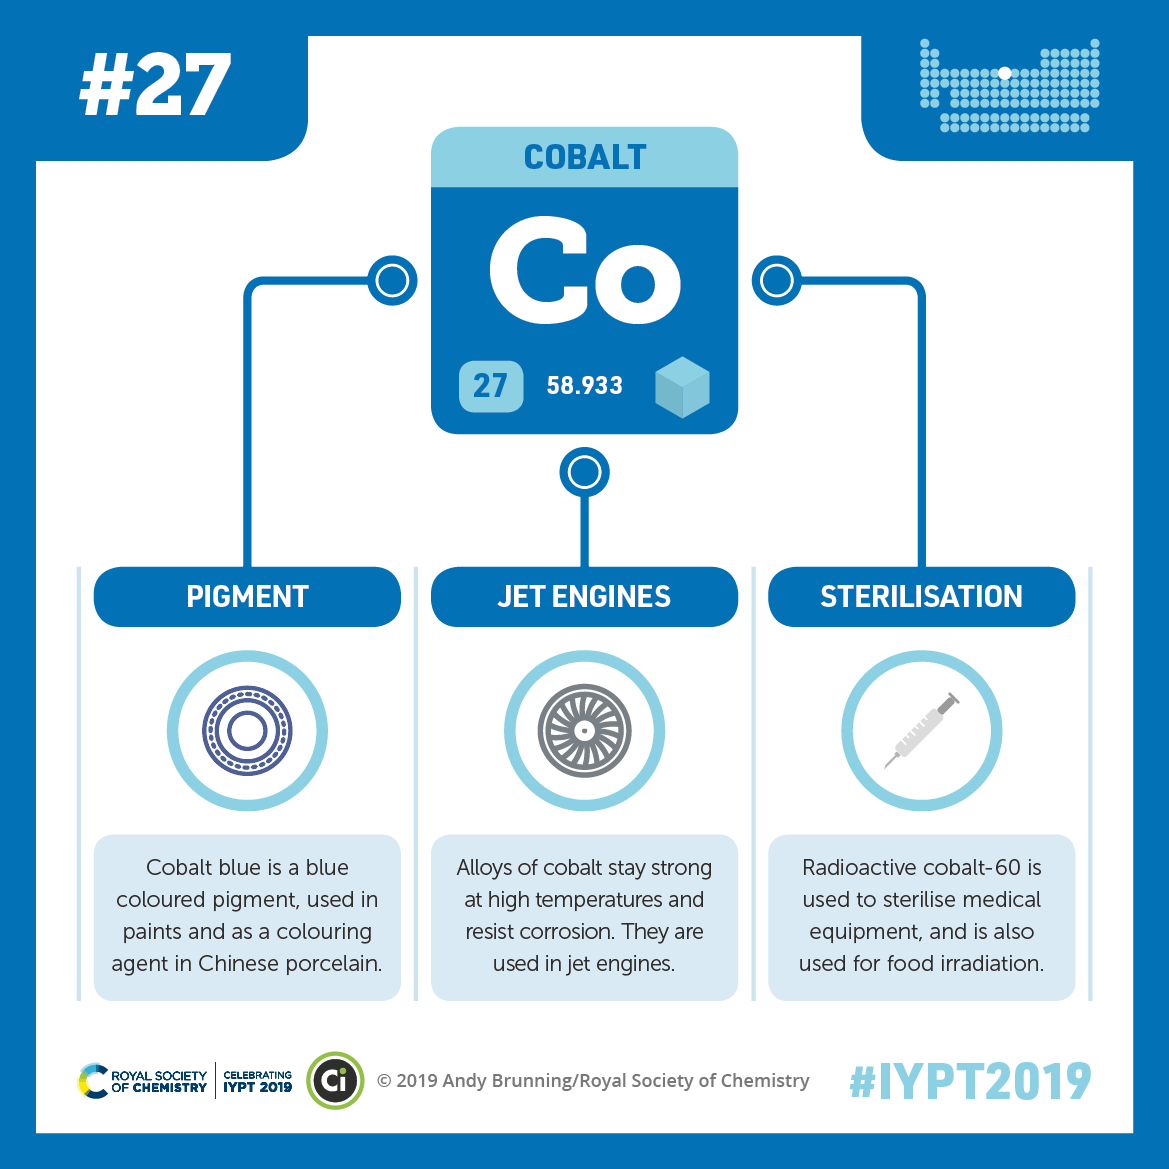 IYPT 2019 Elements 027: Cobalt: Pigments, jet engines, and sterilisation